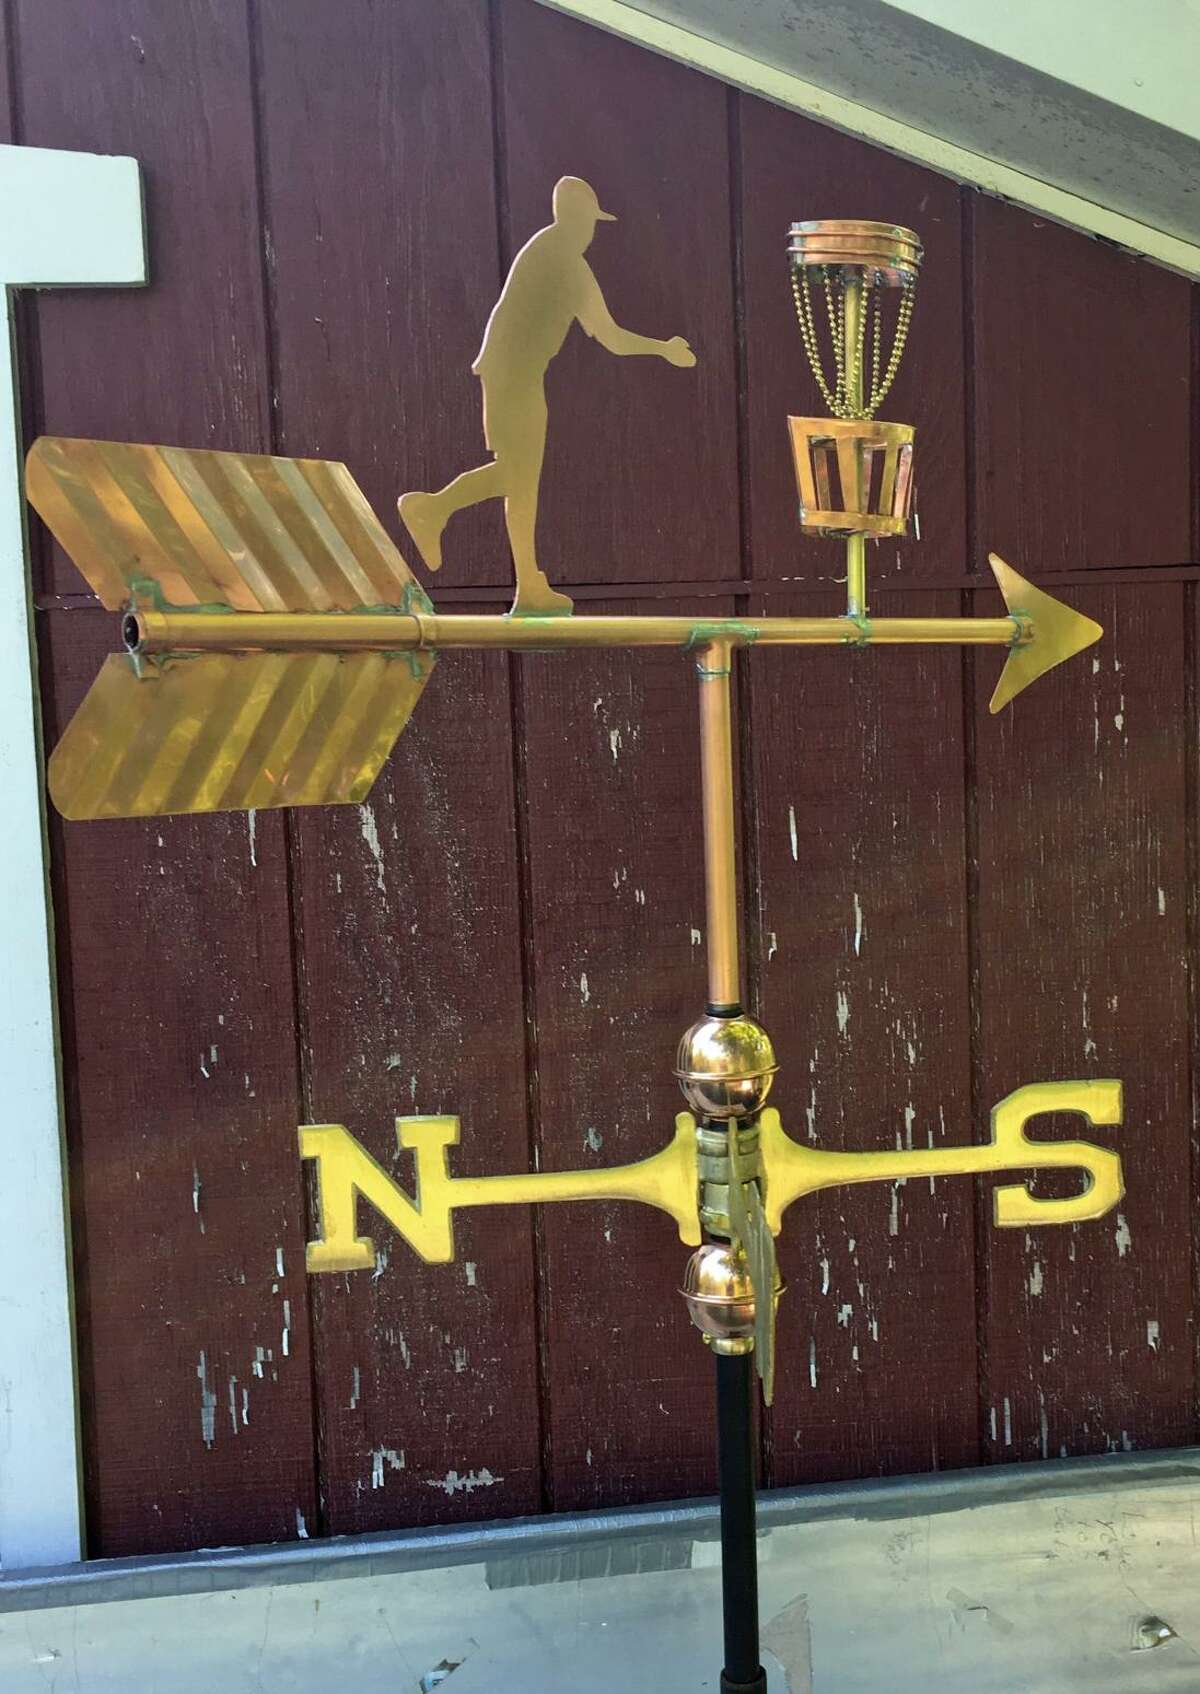 Al Ferris Jr., of New Milford, has been making objects out of copper since the 1980s, including hundreds of weather vanes. Recently, he was asked by a customer to make a weather vane for a Frisbee golf course.